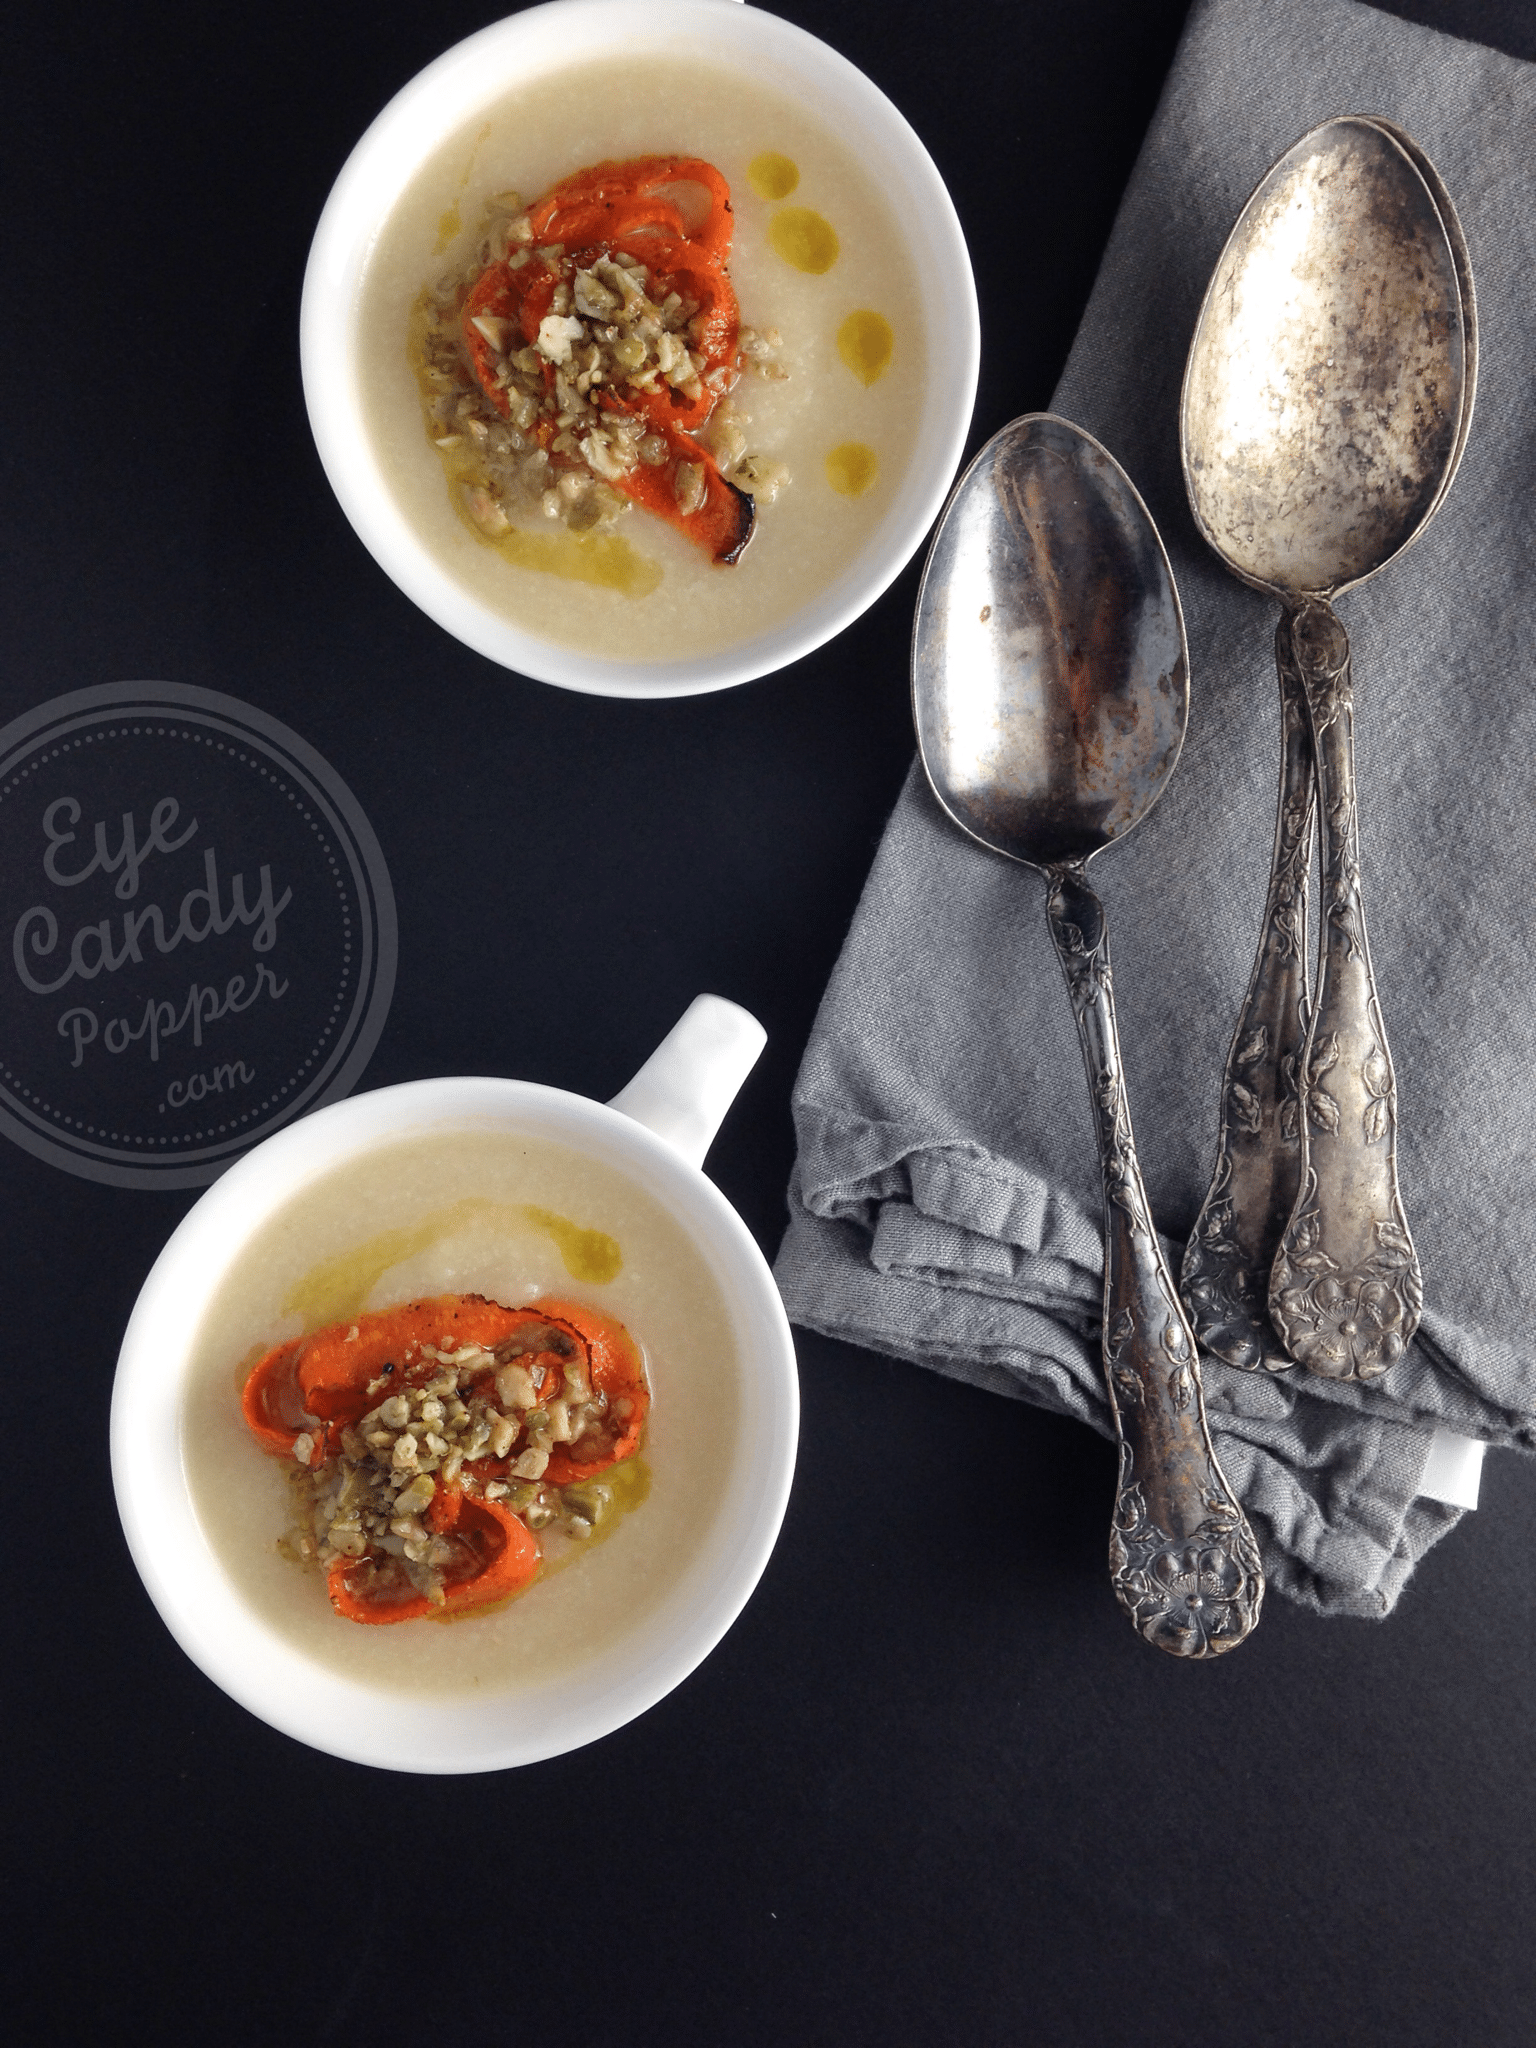 20 min cauliflower soup with carrot chips + sunflower/pumpkin seed crumble (vegan, gluten-free, paleo)